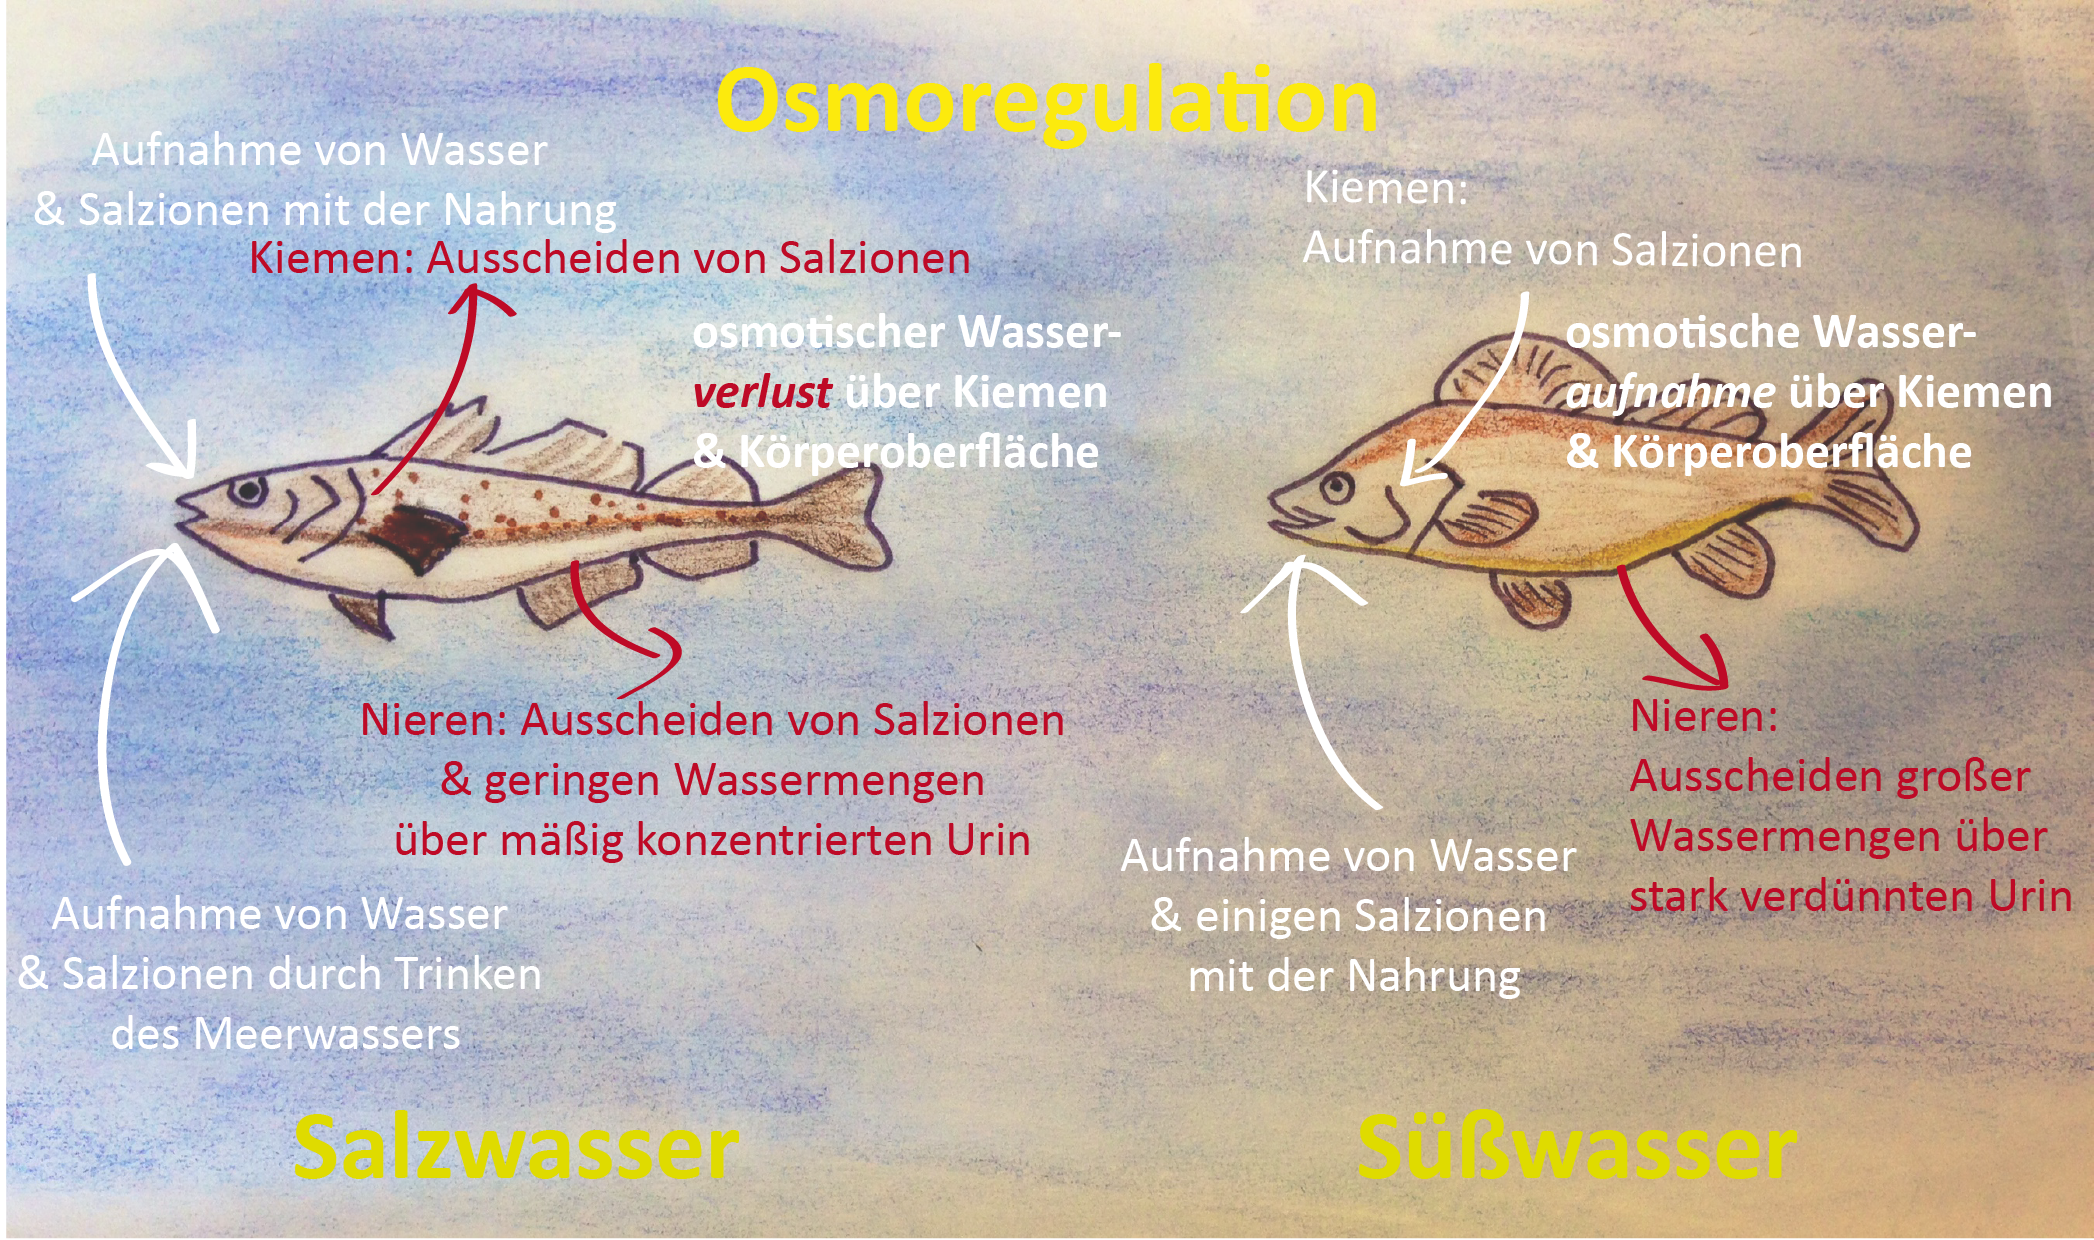 Osmoregulation der Fische in Süß- und Salzwasser by Gi Co on Prezi